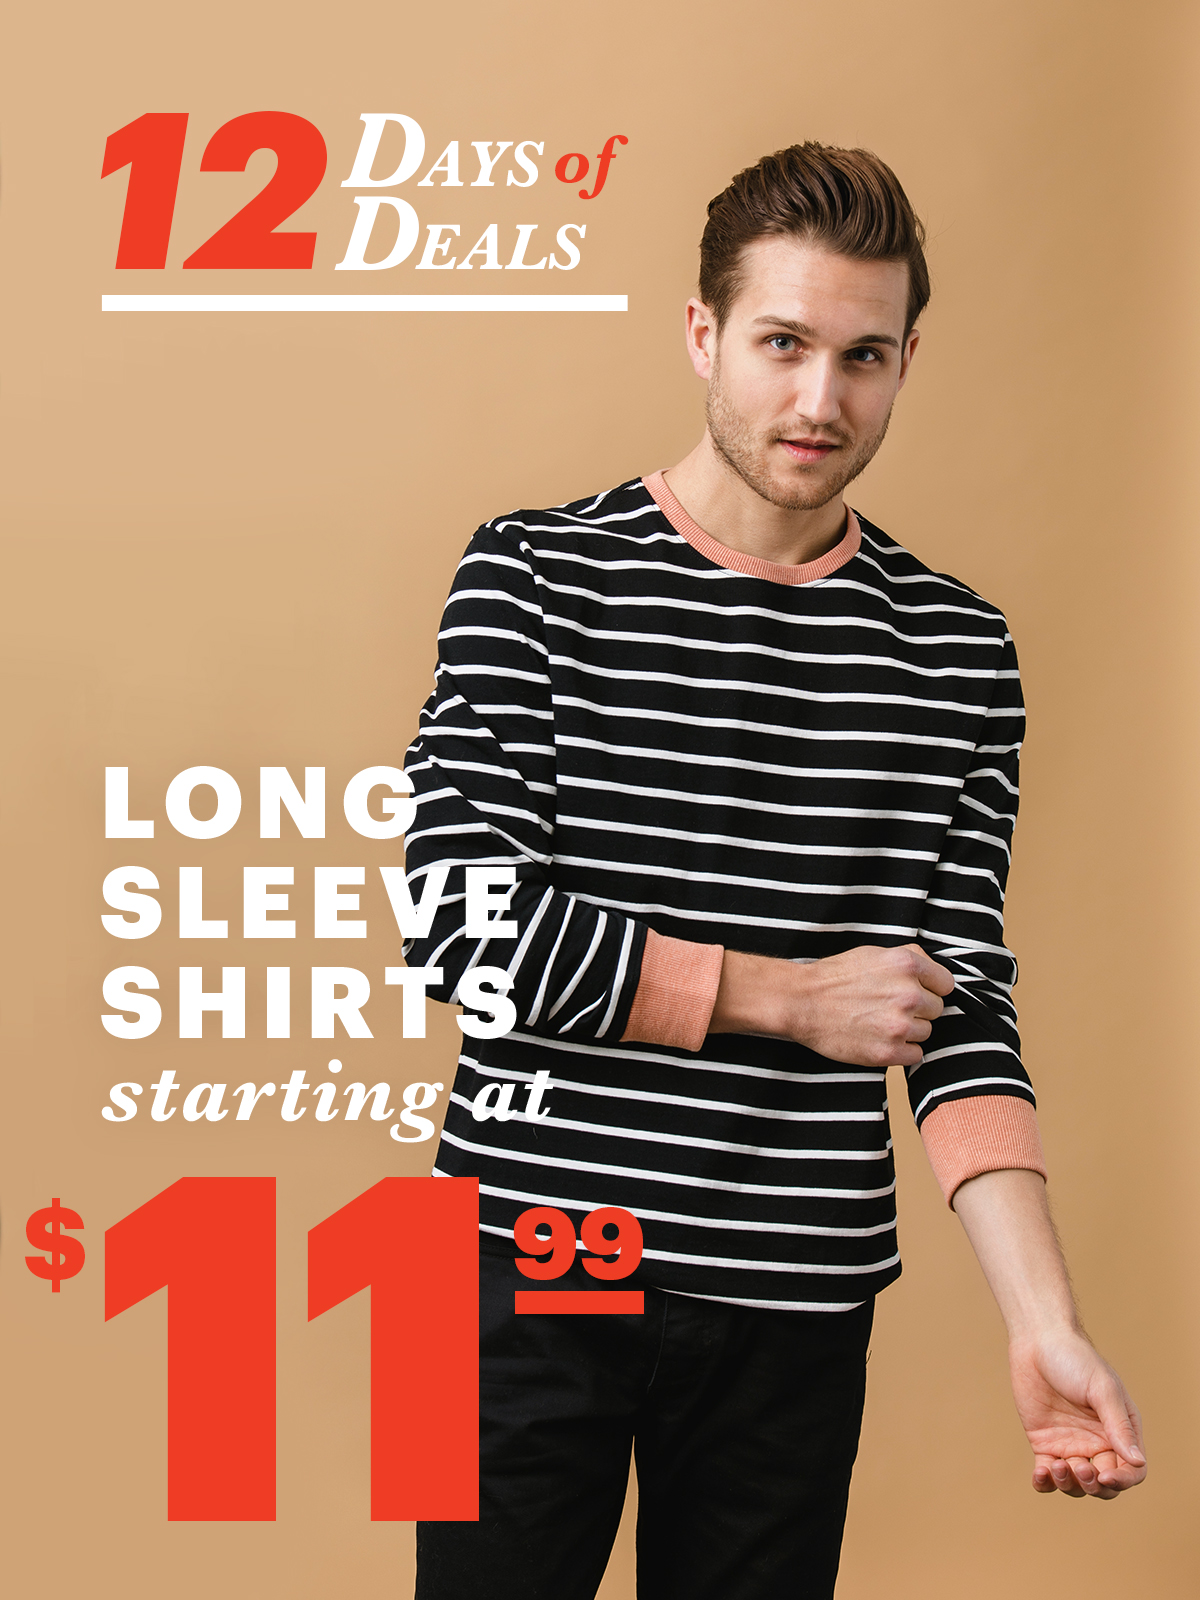 12 Days Of Deals: Day 11 Long Sleeve Shirts Starting at $11.99